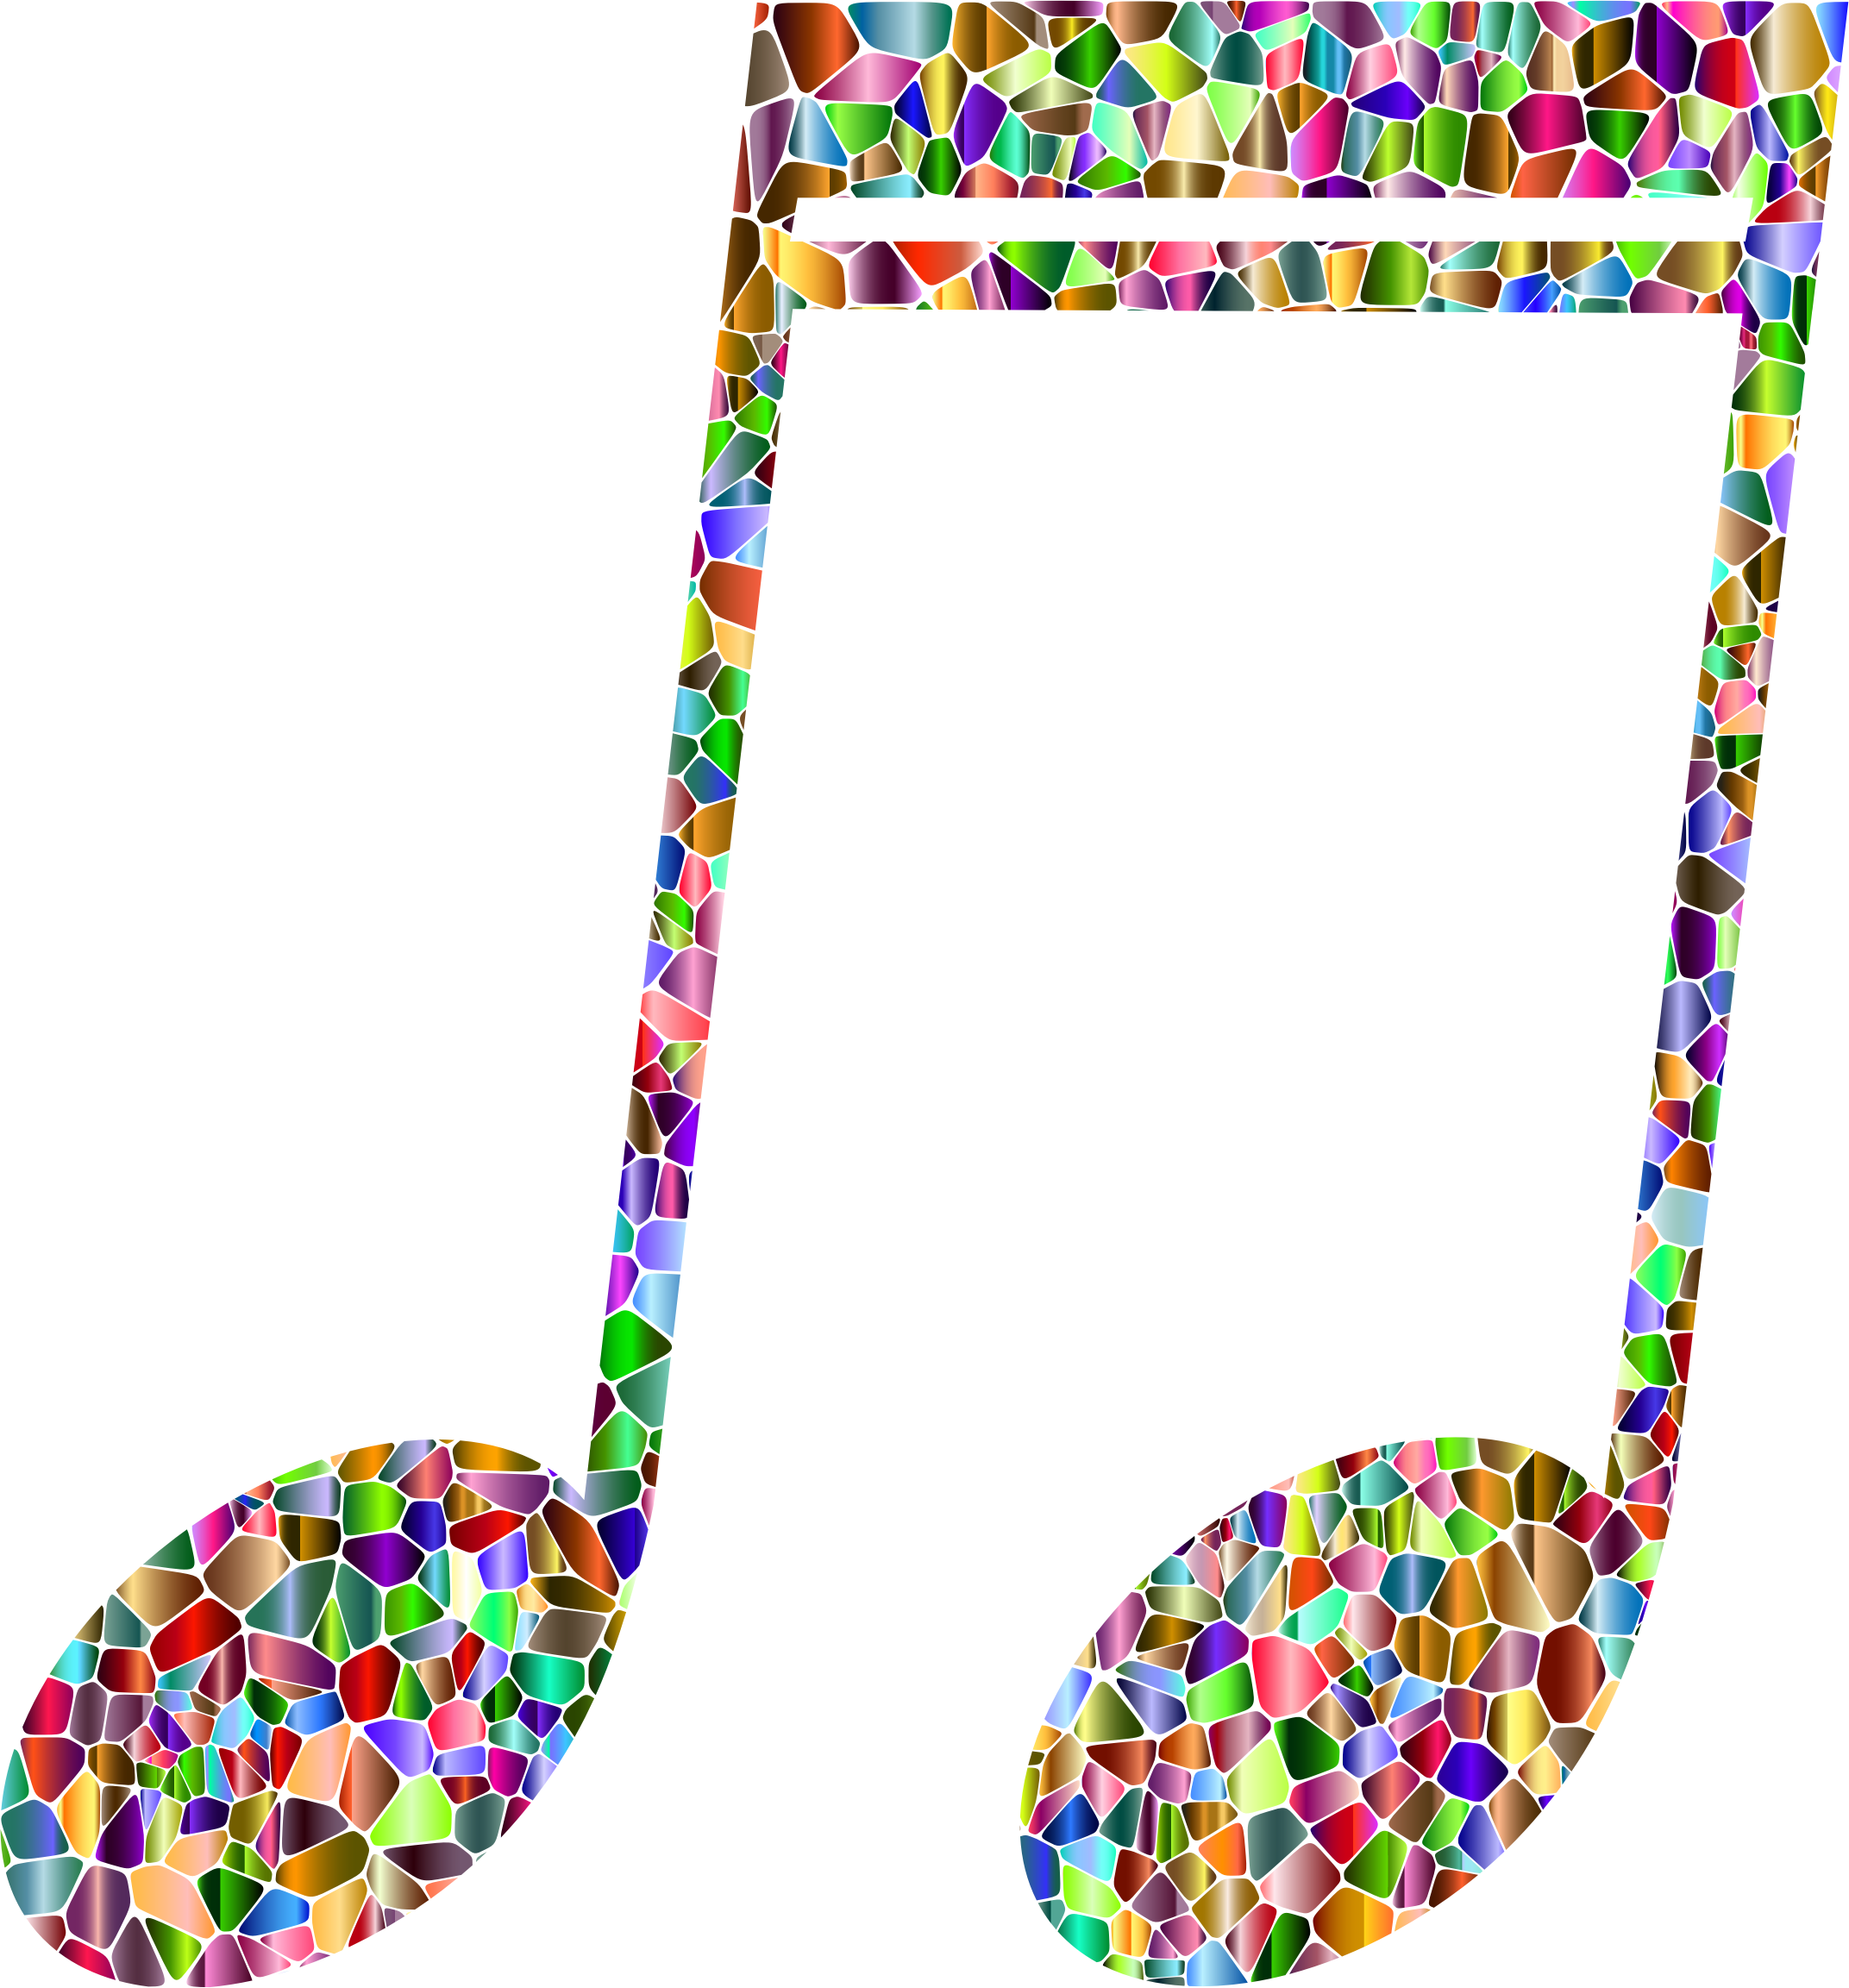 Vivid Chromatic Tiled Musical Note 2 by GDJ